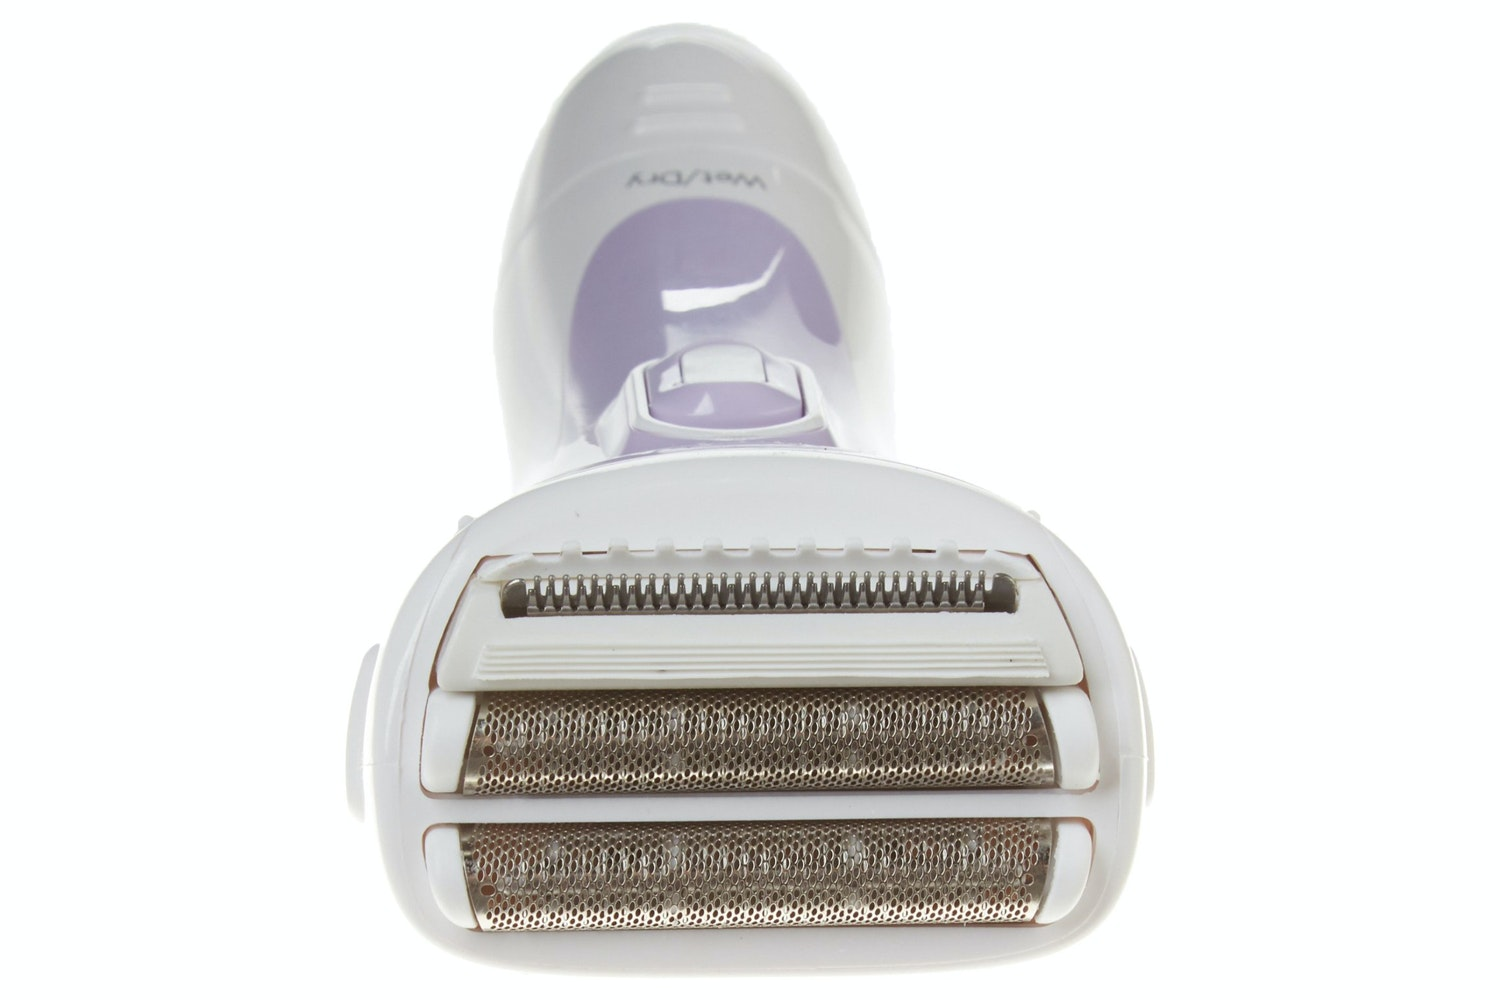 Remington 'Wet & Dry' Lady Shaver